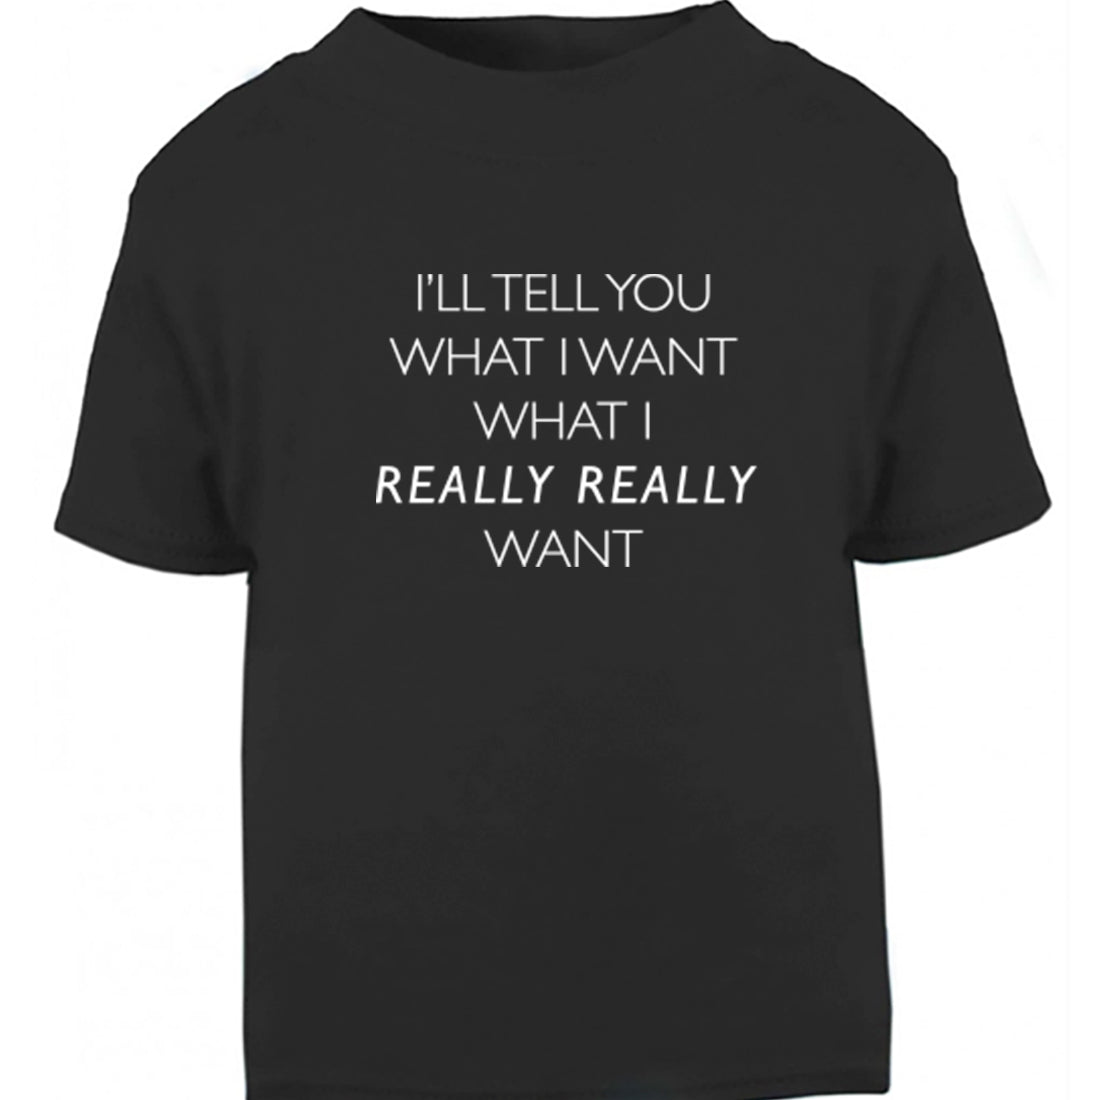 I'll Tell You What I Want What I Really Really Want-Spice Girls Childrens Ages 3/4-12/14 Unisex Fit T-Shirt K2432